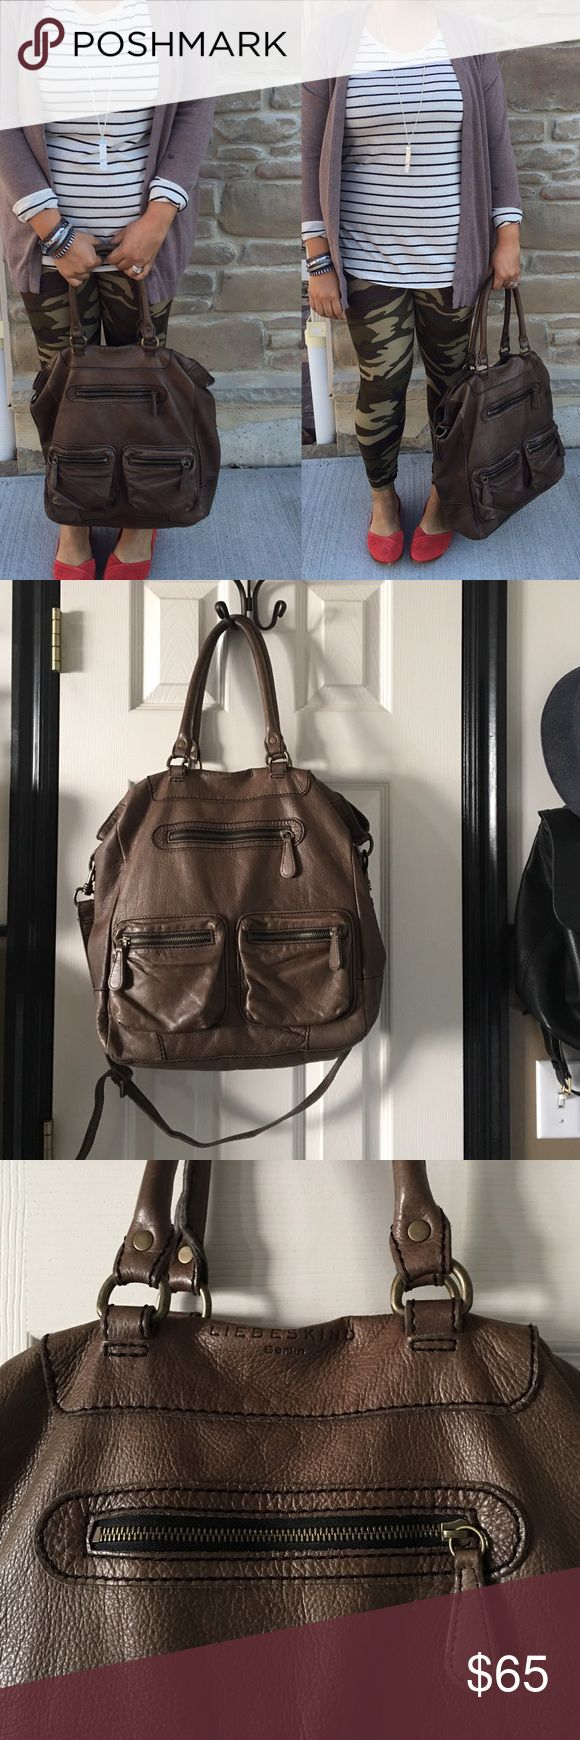 """Liebeskind Large Leather Brown Tote bag I seriously love this bag. Liebeskind is a favorite leather brand of mine that makes high quality leather!! This bag can hold it all! Measures about 15"""" x 14"""" x 7"""". Handles are measures about 9"""" tall. Strap is about 36""""-45"""" great bag!! It's a nice brown cognac color Liebeskind Bags Shoulder Bags"""